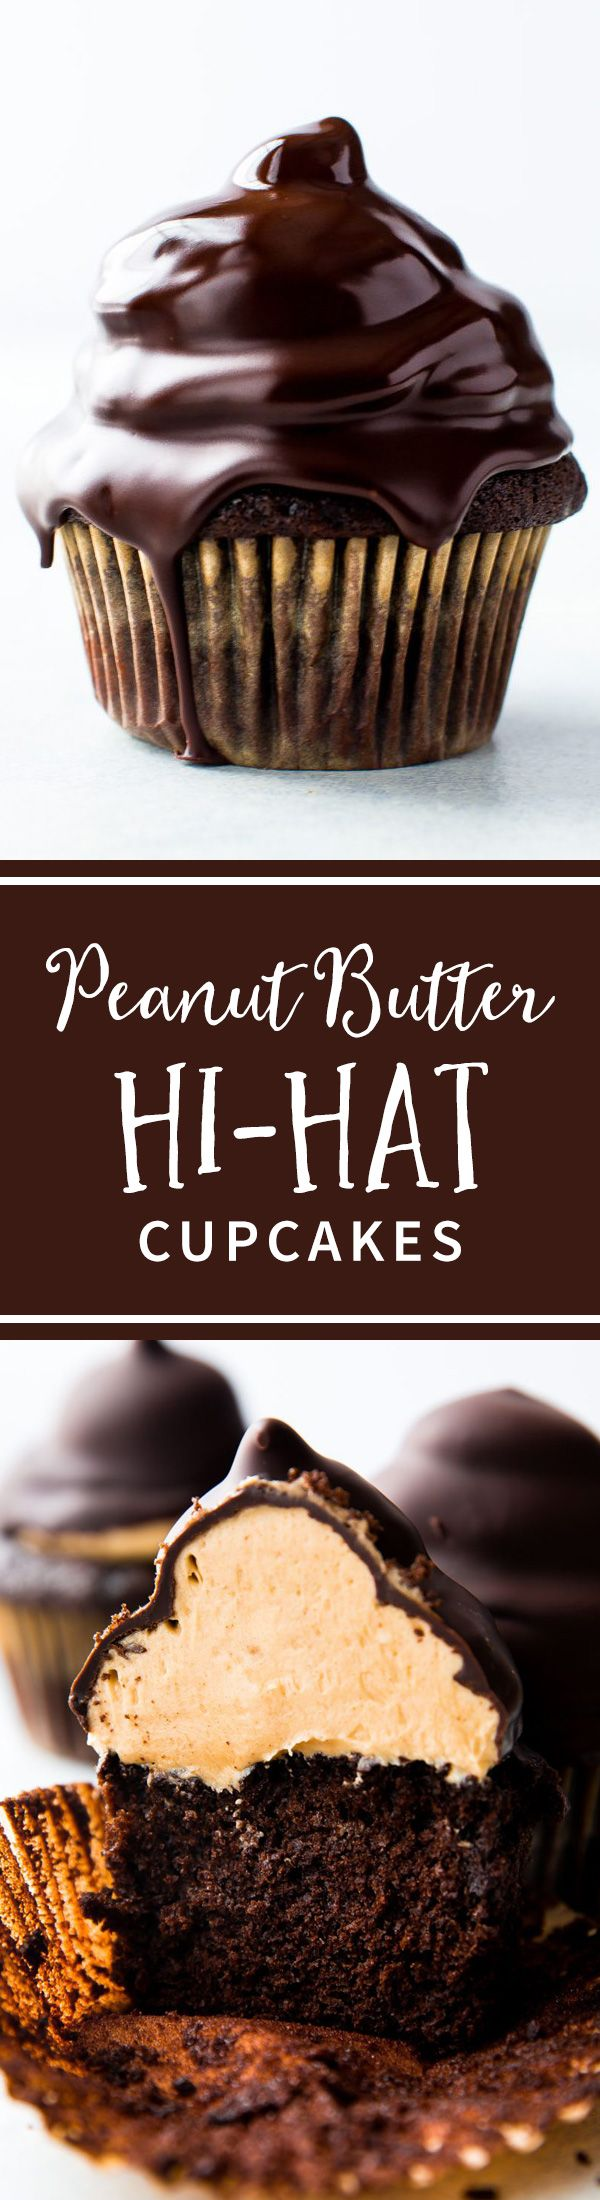 Step photos and explanations for making peanut butter hi-hat cupcakes at home! Recipe on sallysbakingaddiction.com